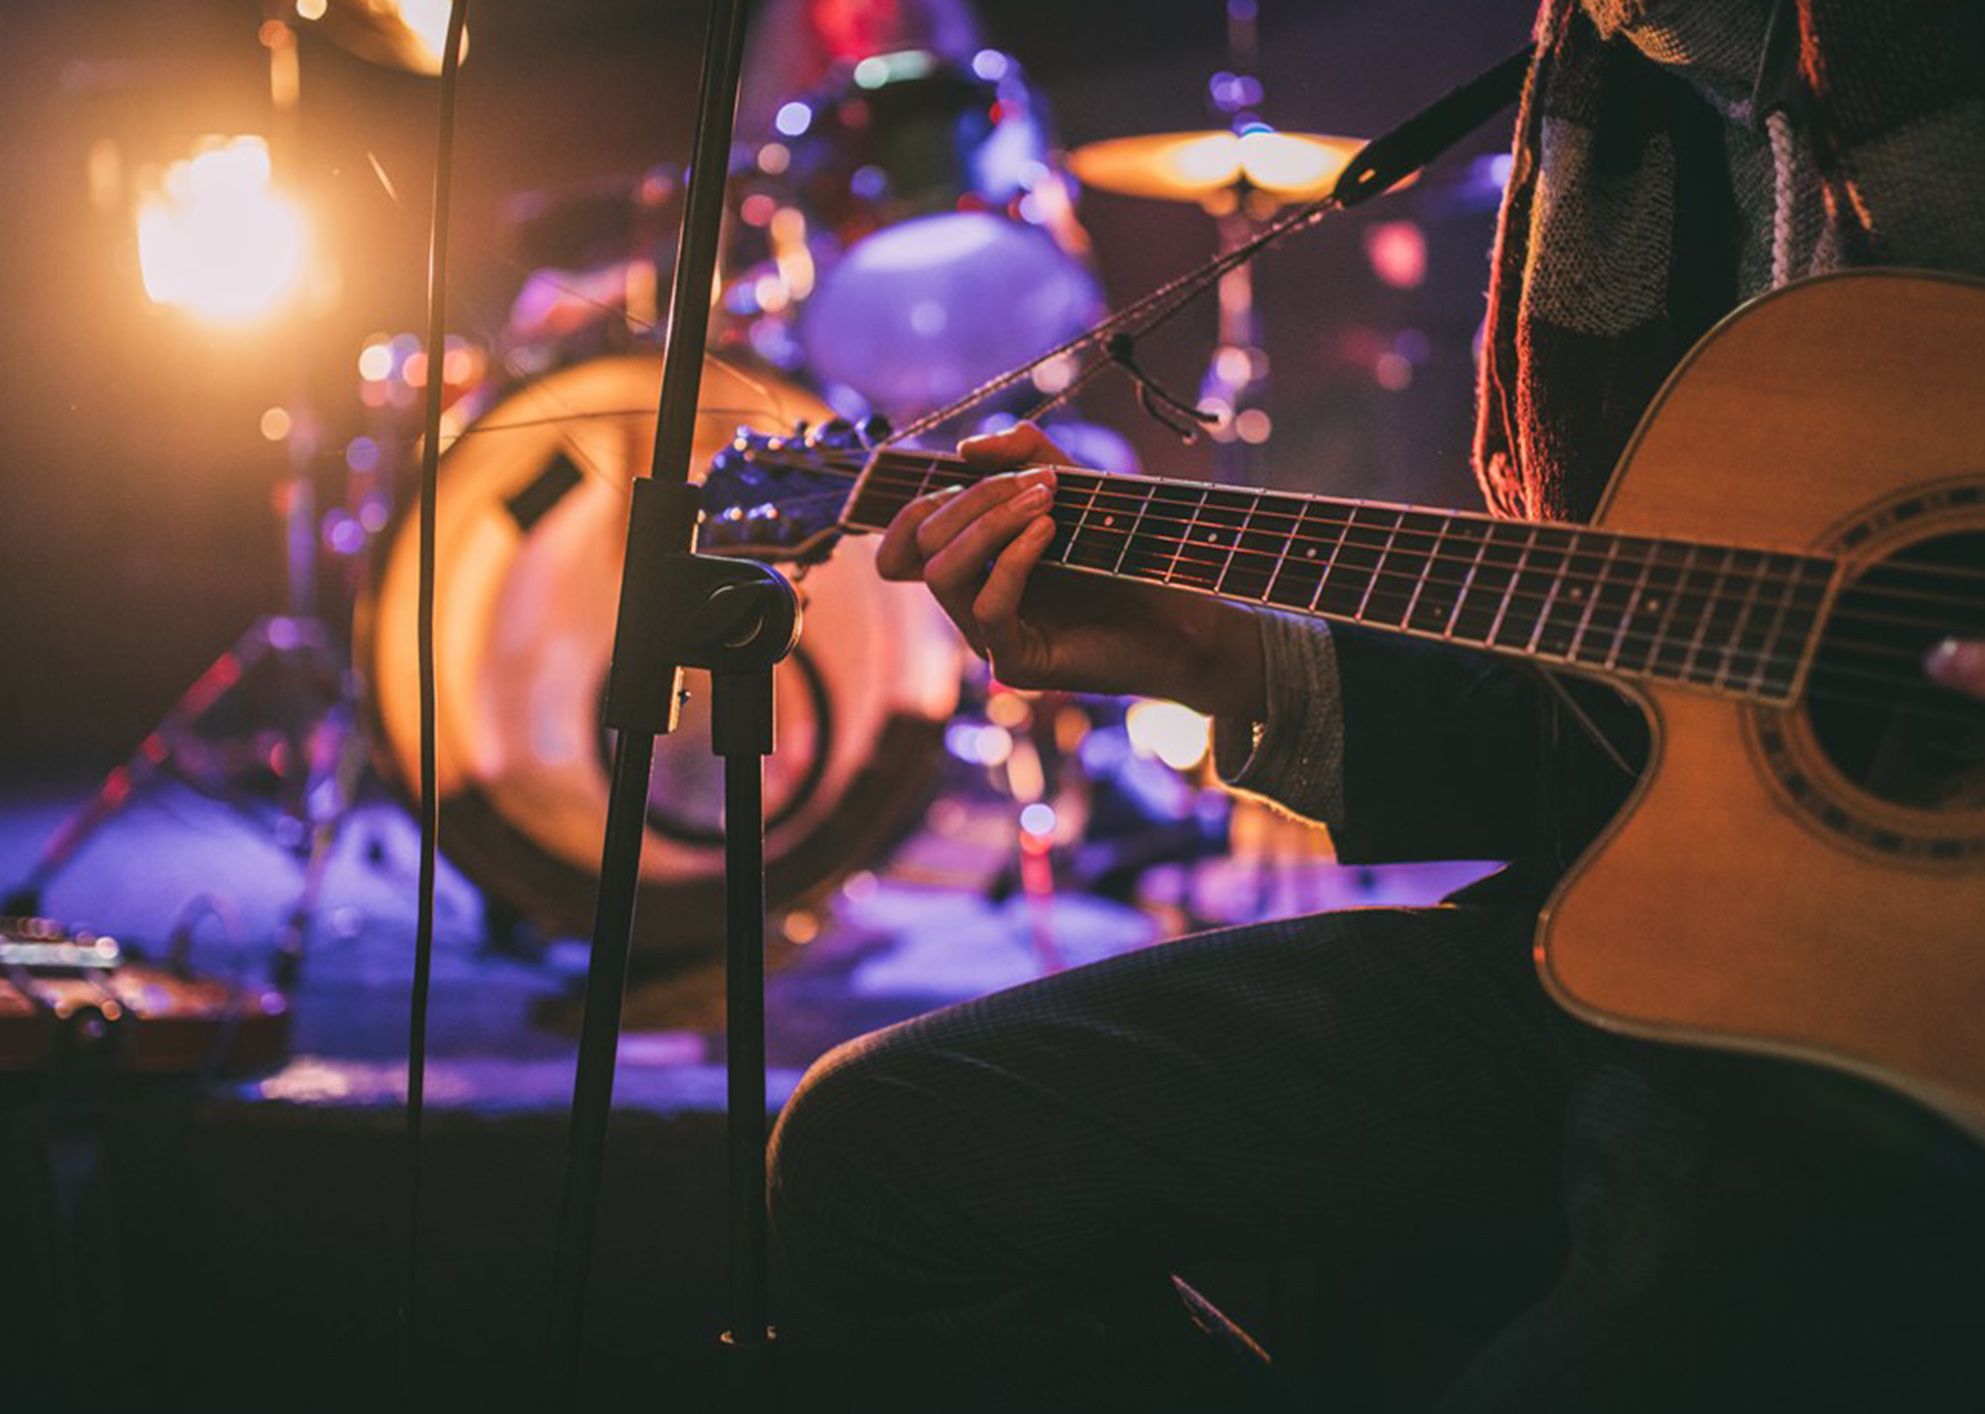 low light, close up of a person playing the guitar. a drum kit is blurred in the background